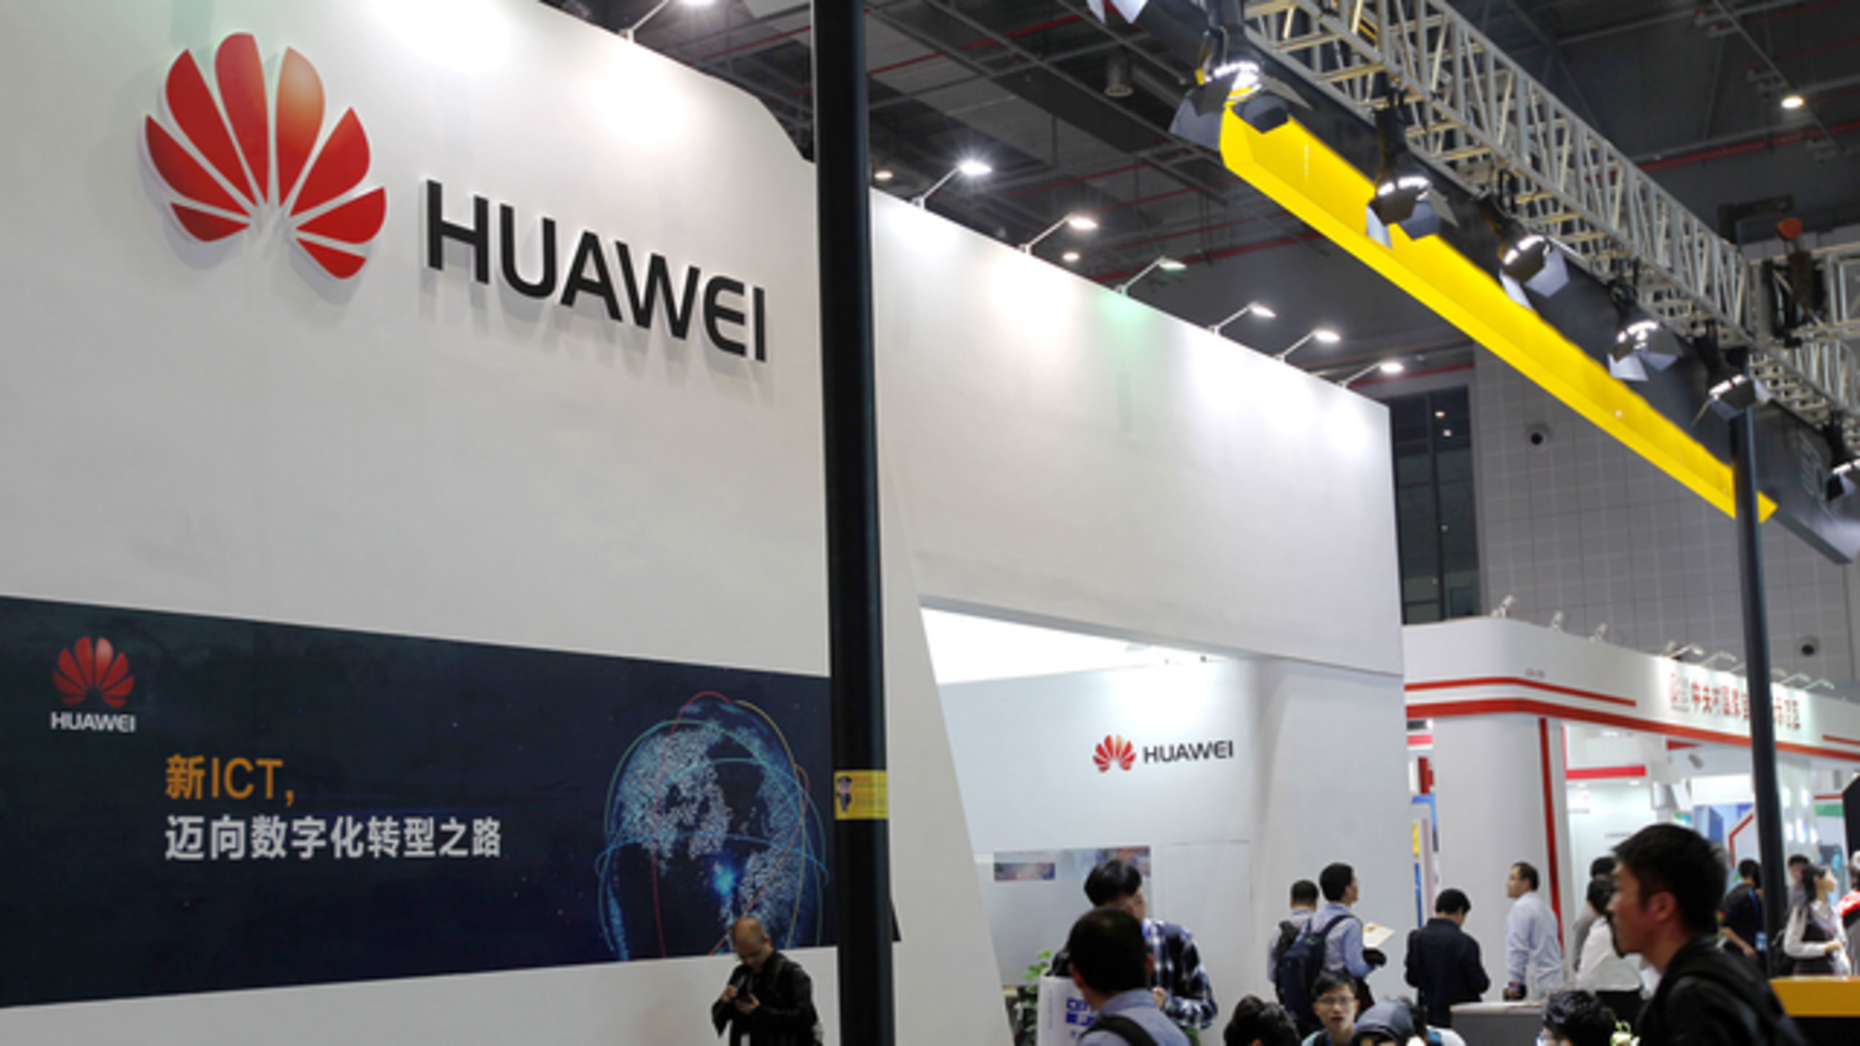 People visit Huawei's stand during an exhibition in Shanghai in late November.  Photo by AP